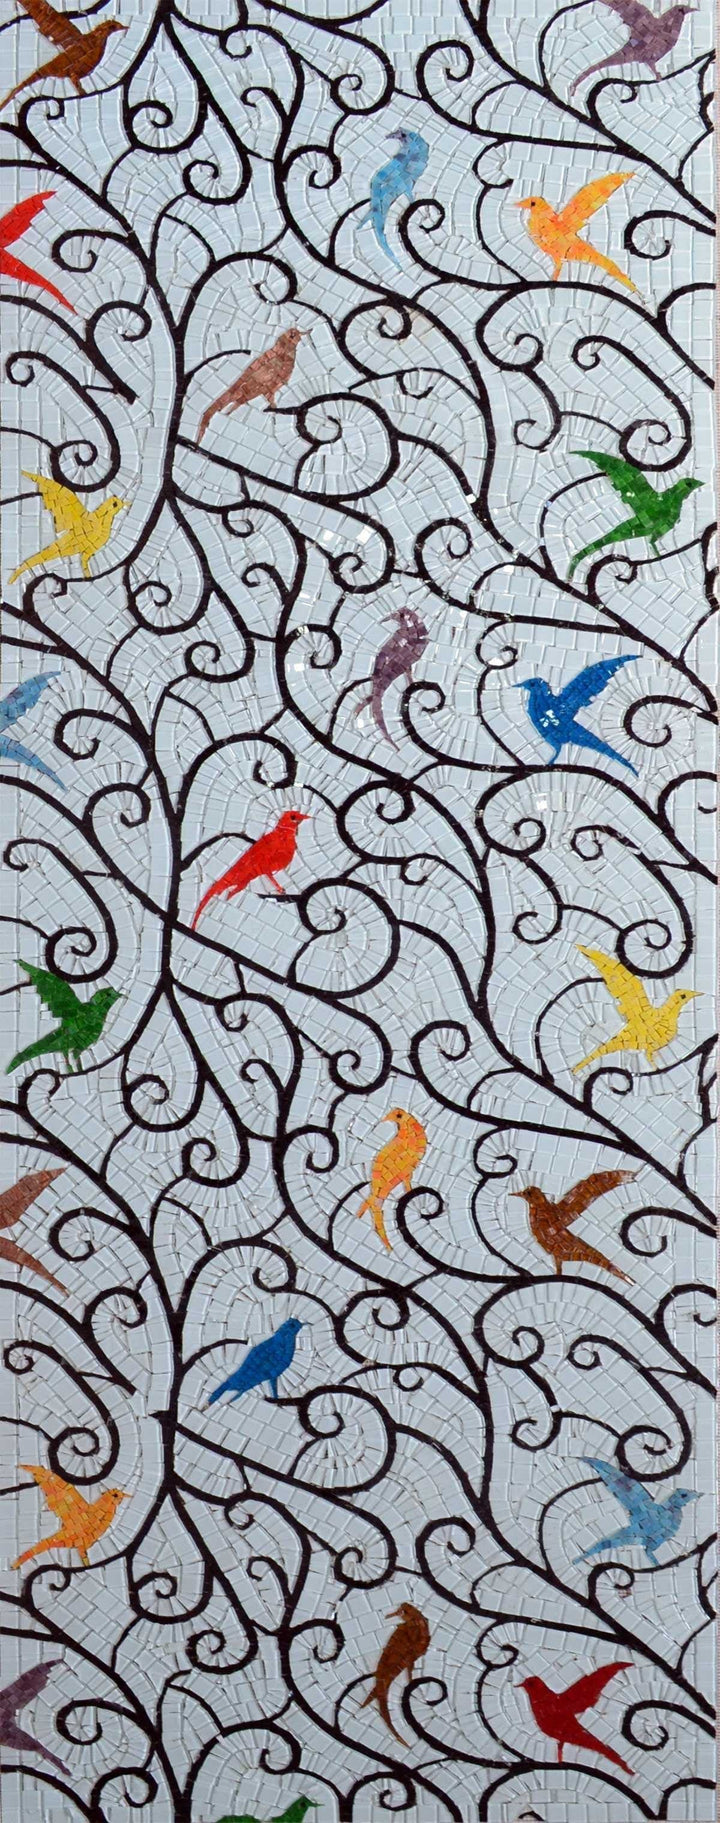 Mosaic Tile Patterns - Colorful Birds